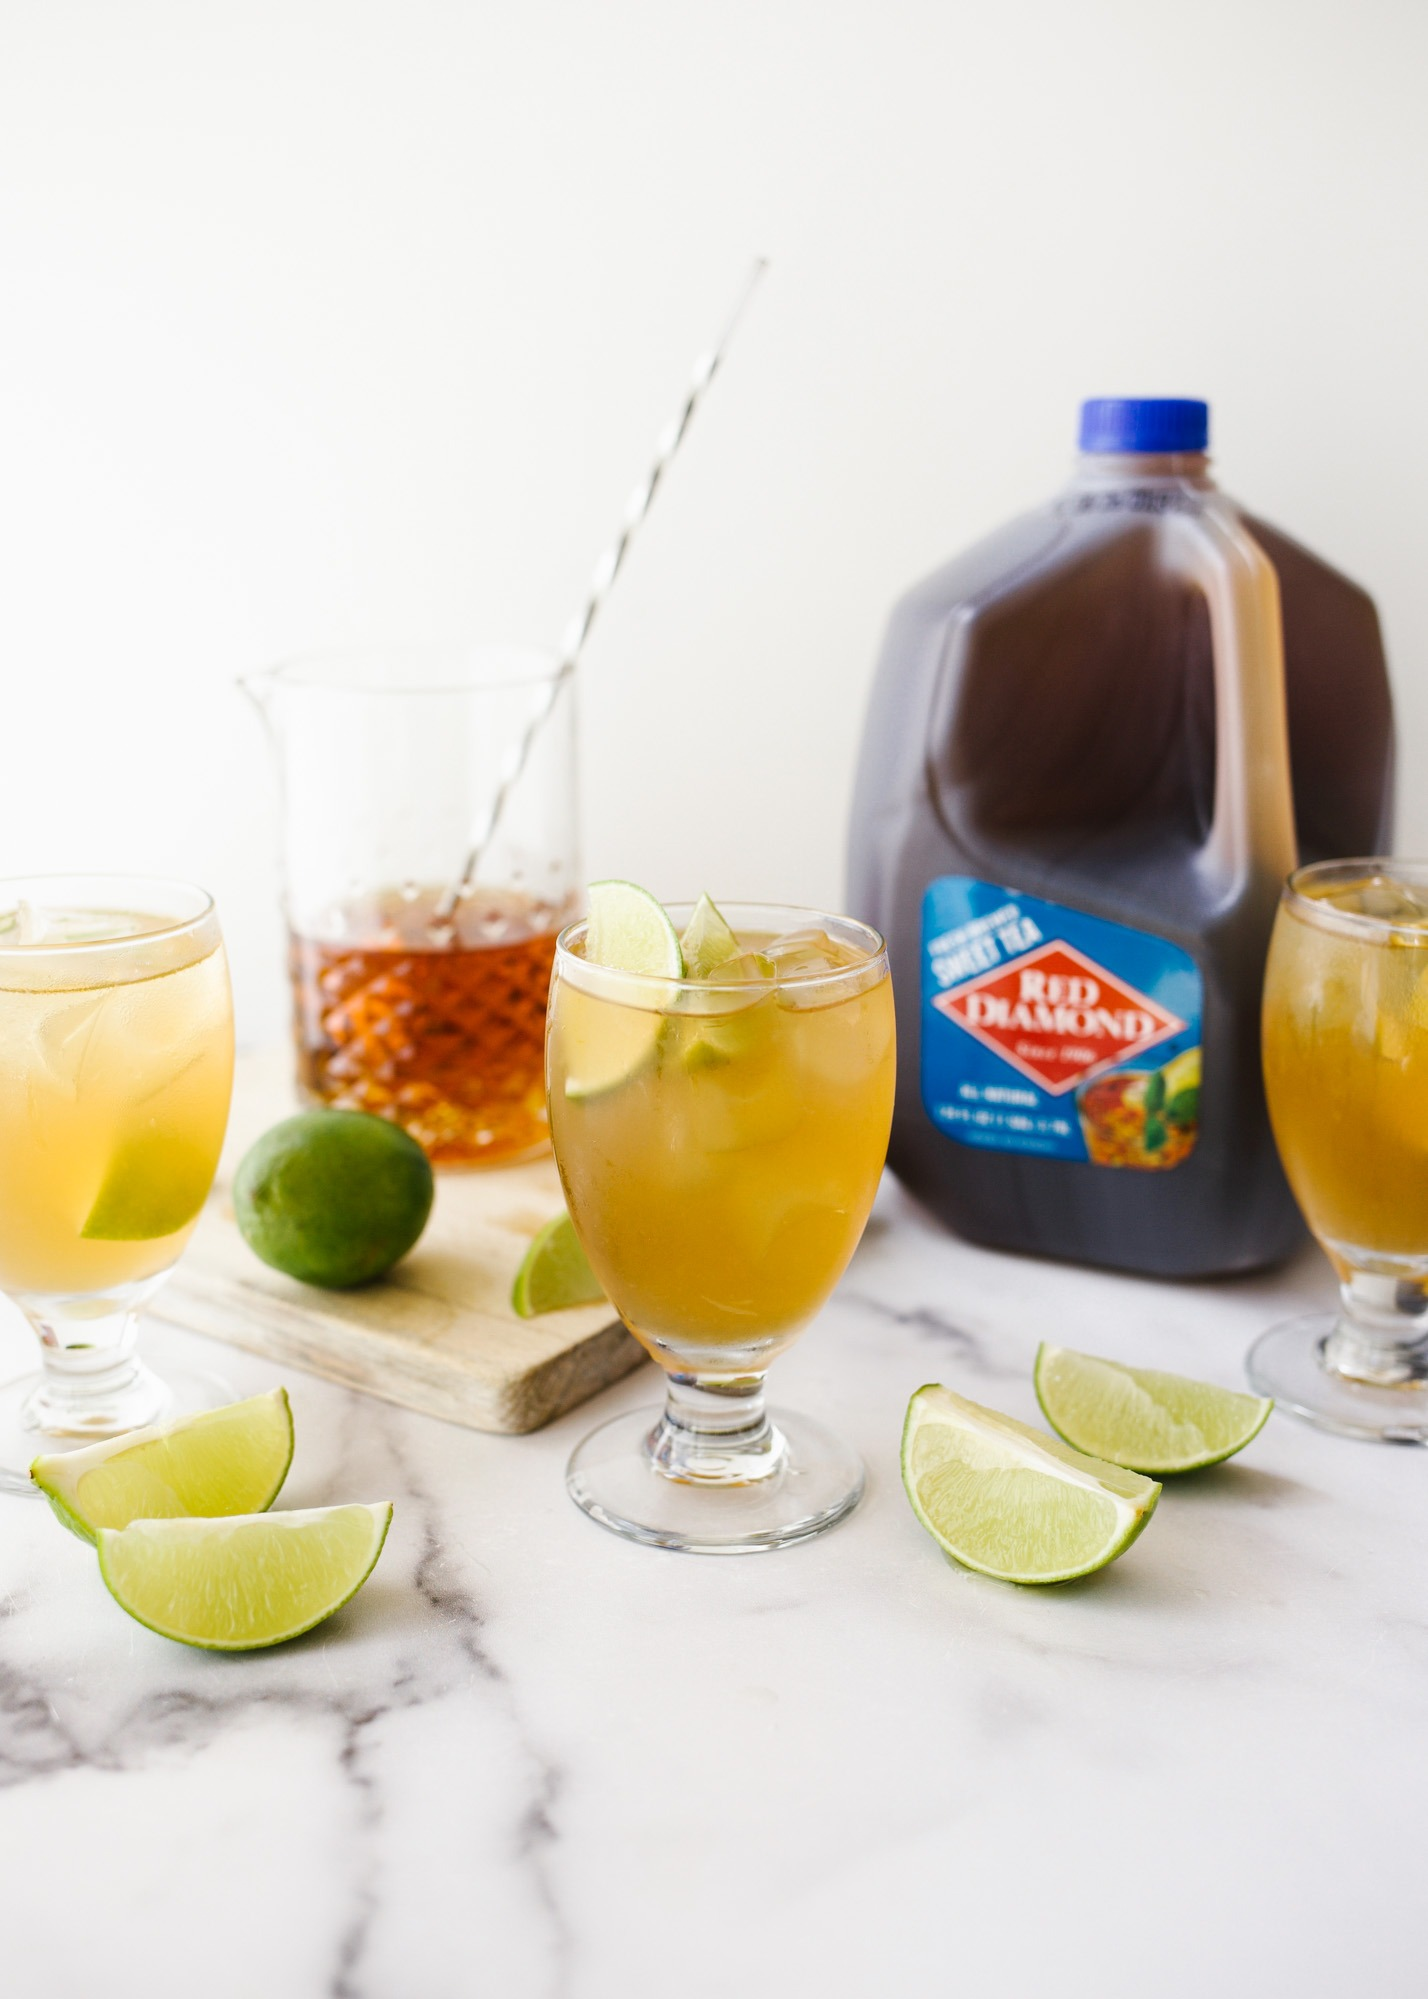 Bourbon Ginger Sweet Tea made with ginger beer, bourbon whiskey, lime, and Red Diamond ready-to-drink sweet tea. This is a great summertime cocktail that can be batched for a crowd. Refreshing from the ginger and sweetened by Read Diamond's tea, this bourbon cocktail is a Southern delight! Learn more about the recipe on thewoodandspoon.com